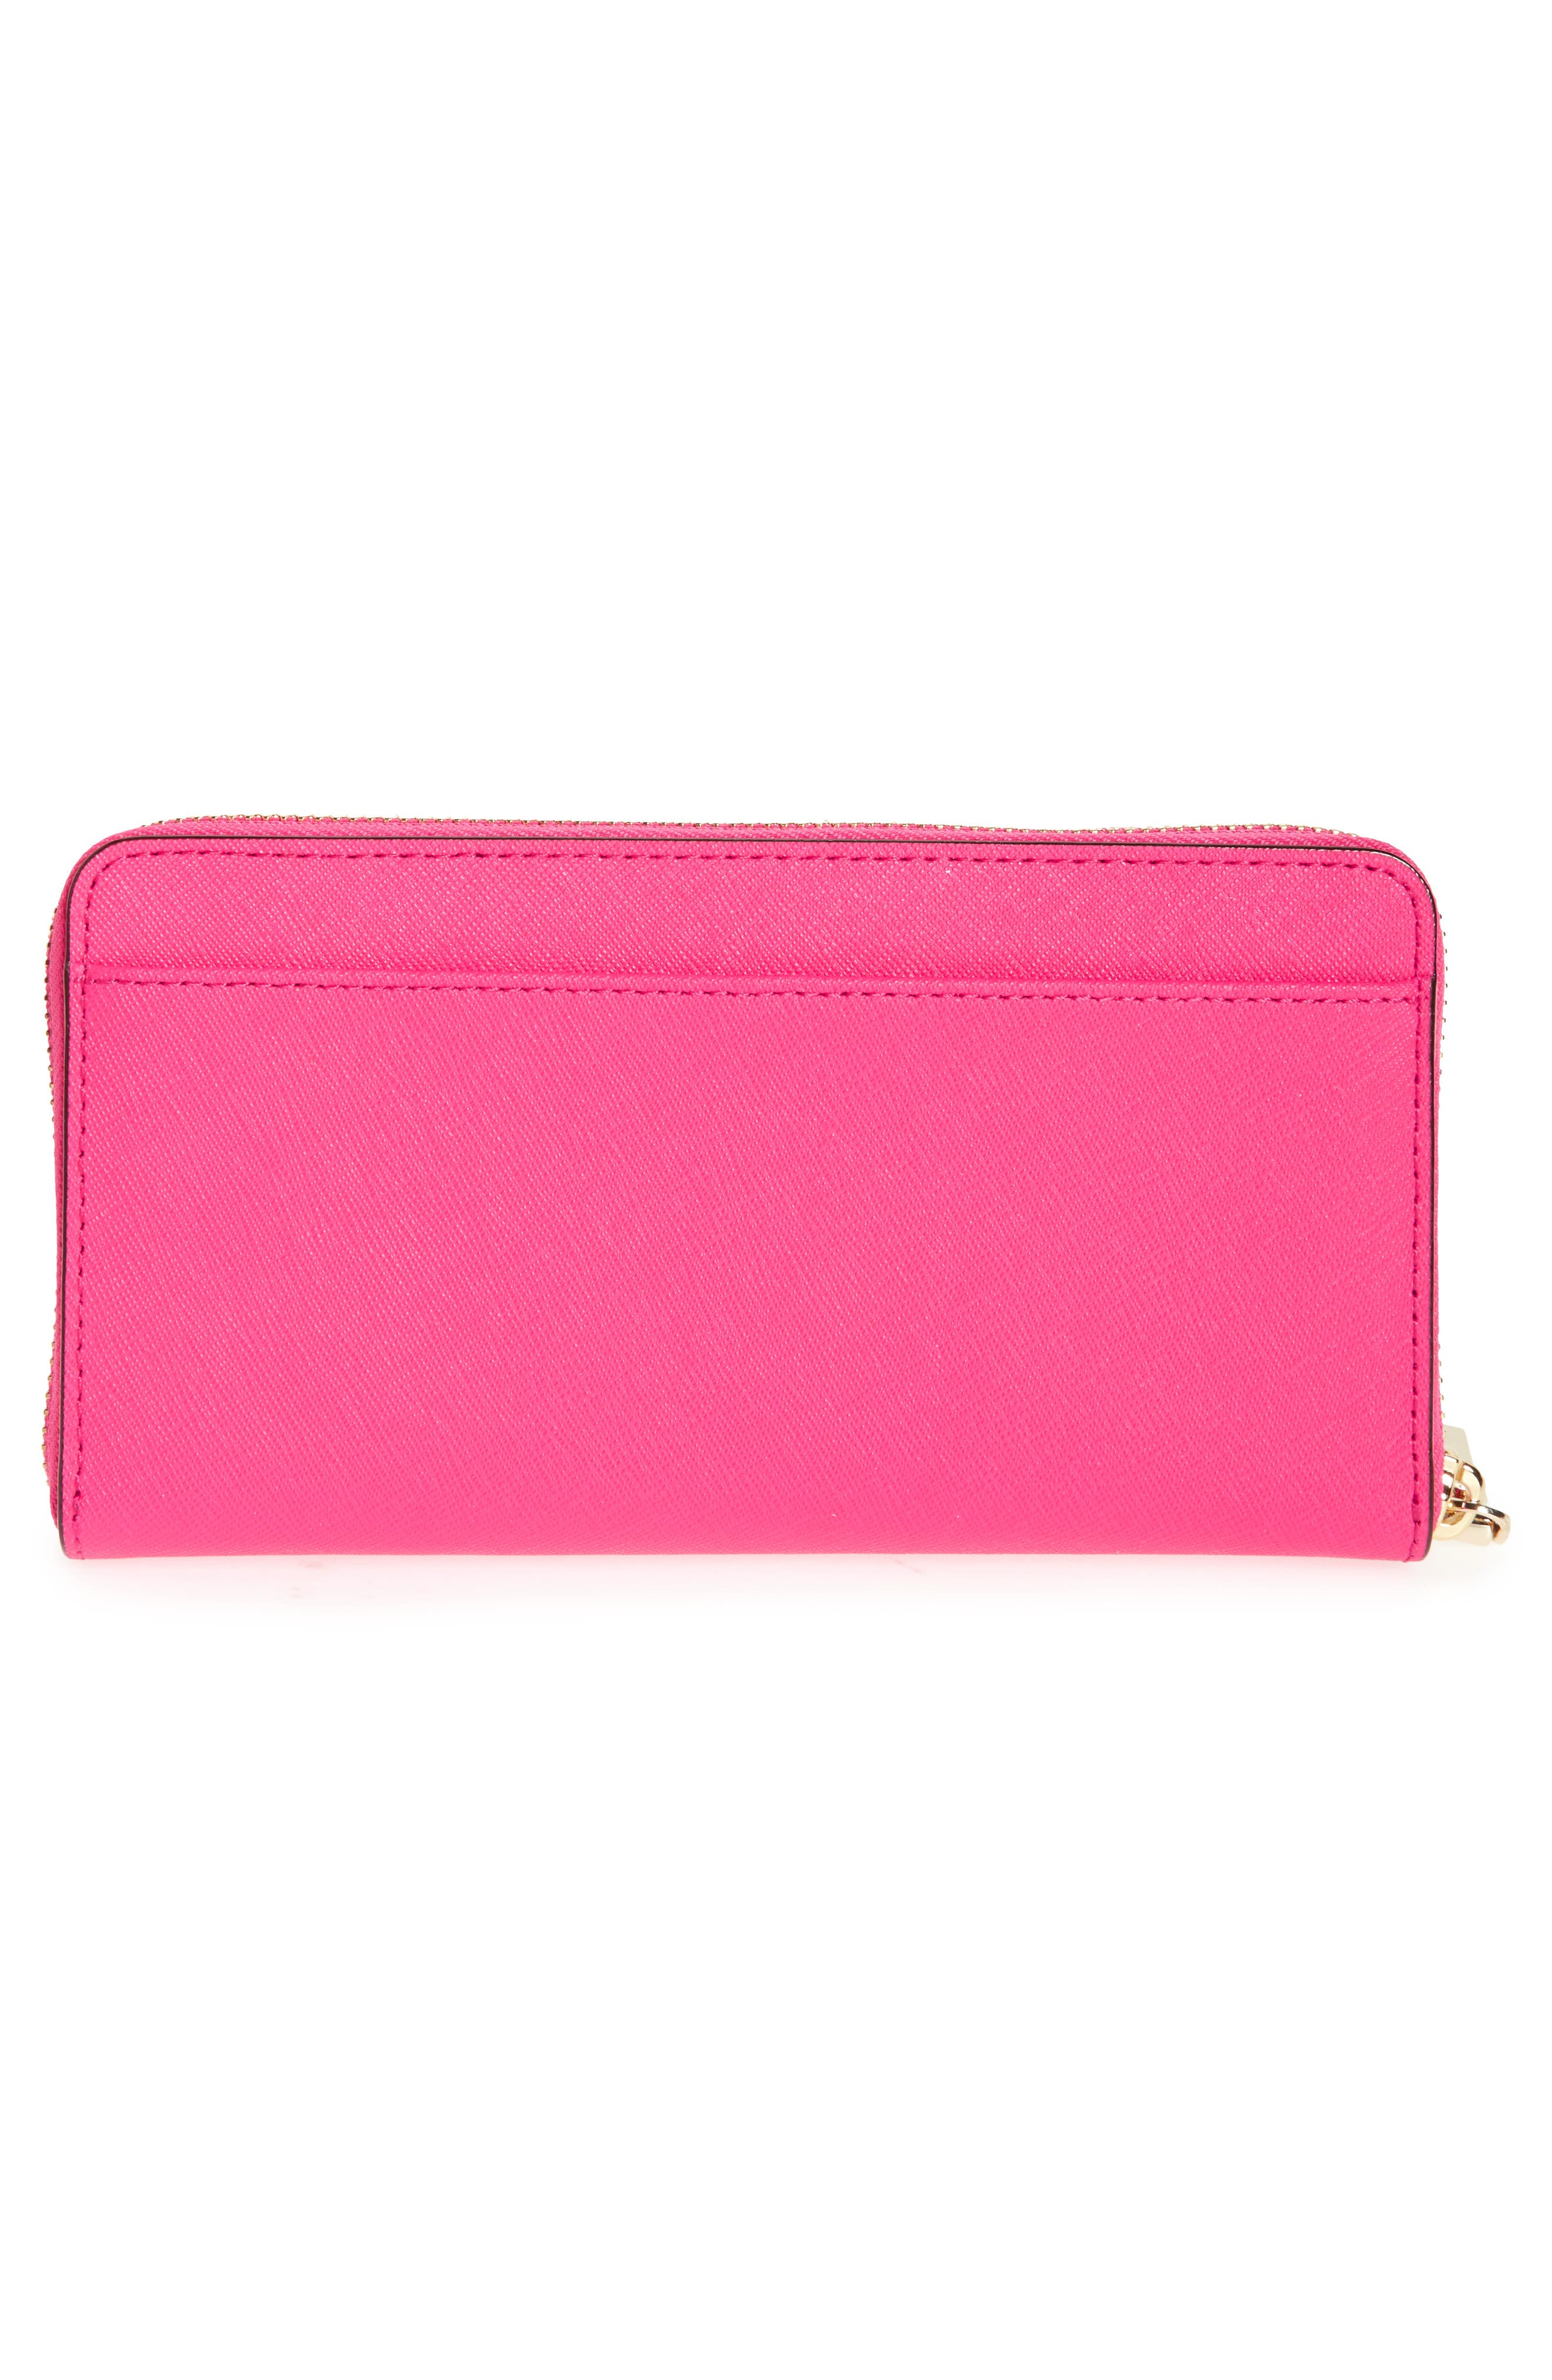 'cameron street - lacey' leather wallet,                             Alternate thumbnail 80, color,